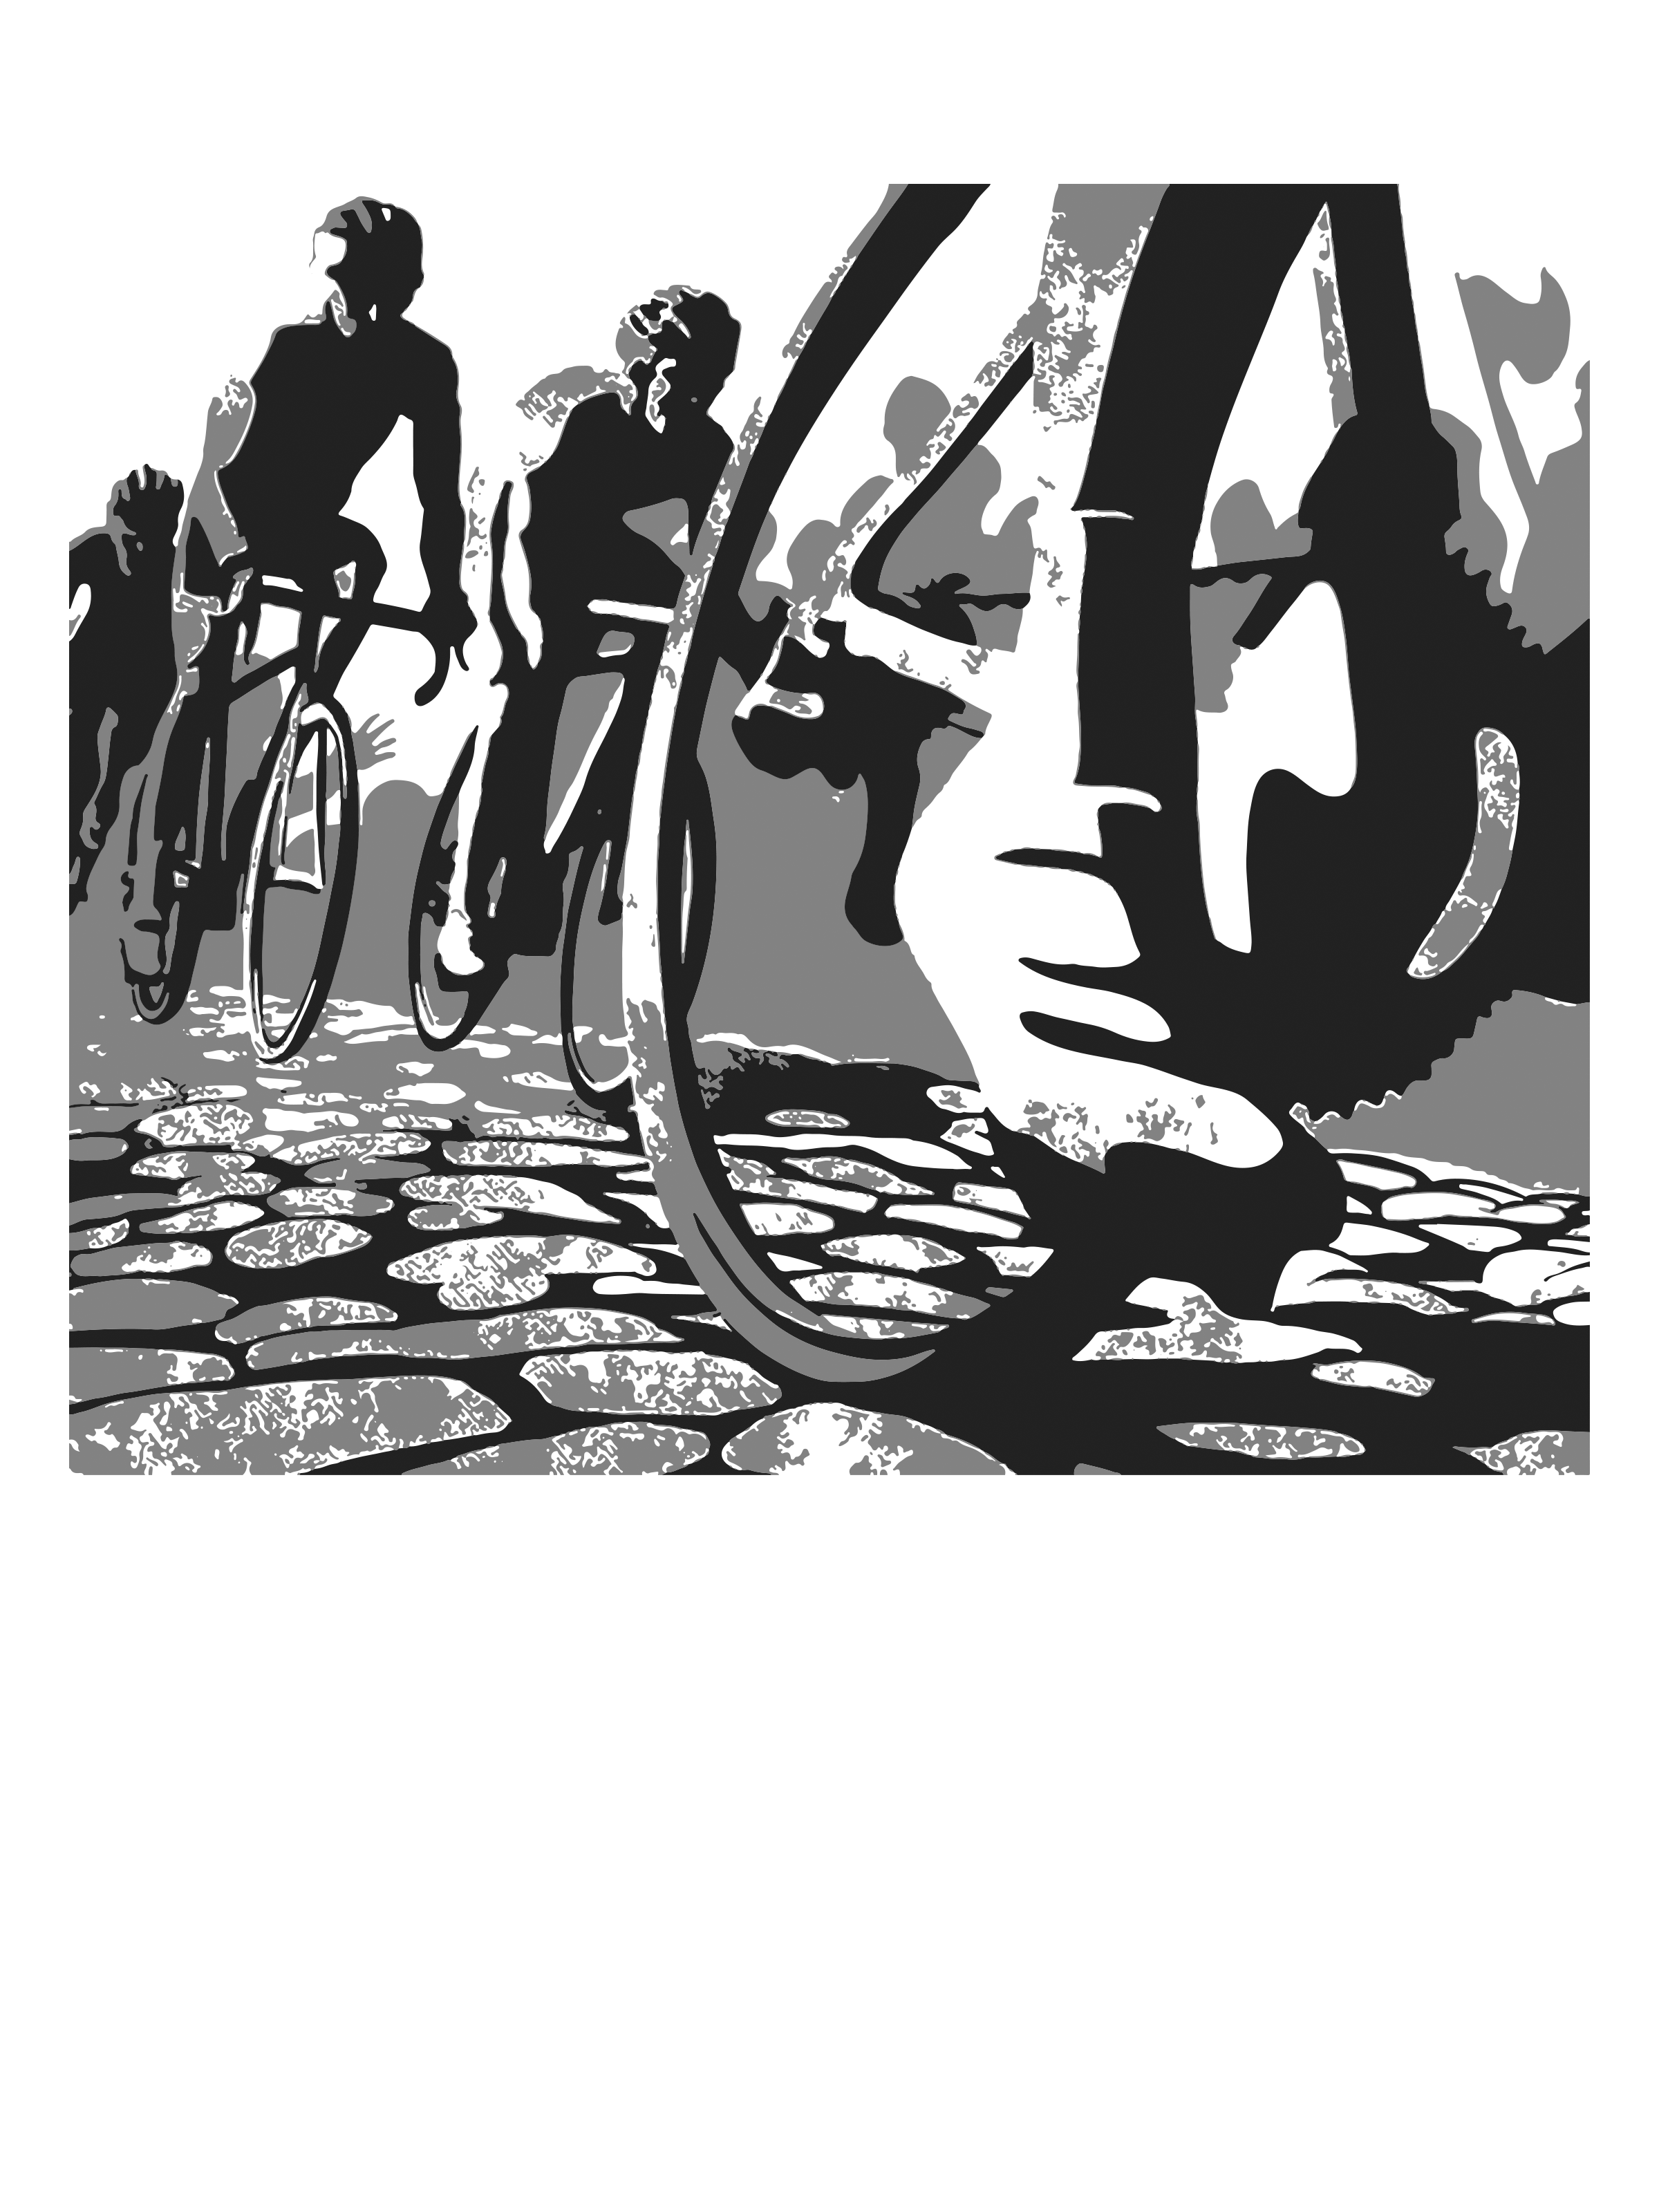 0171 – Bicycle Race